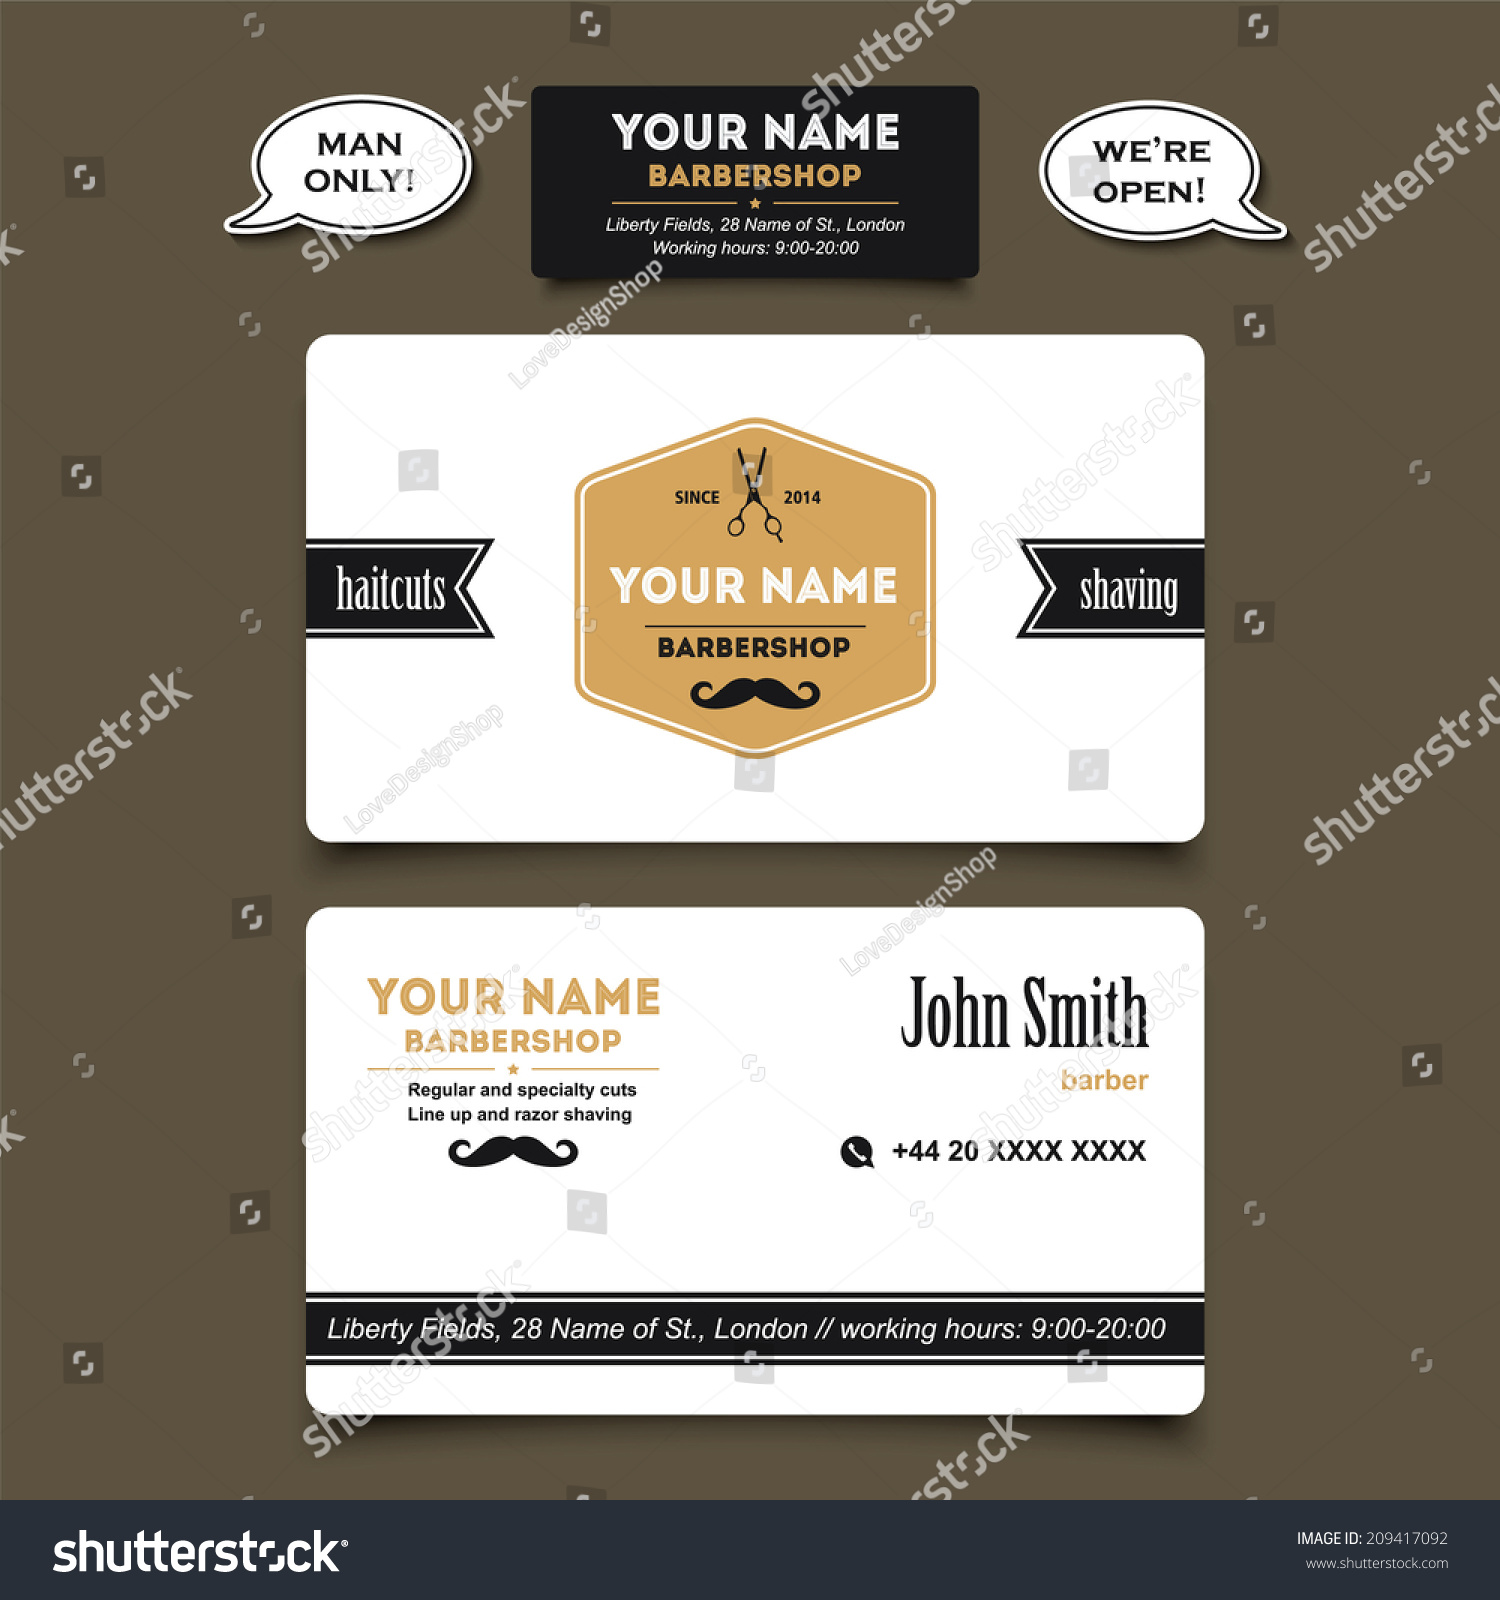 Hair salon barber shop business card stock vector royalty free hair salon barber shop business card design vector template fbccfo Gallery